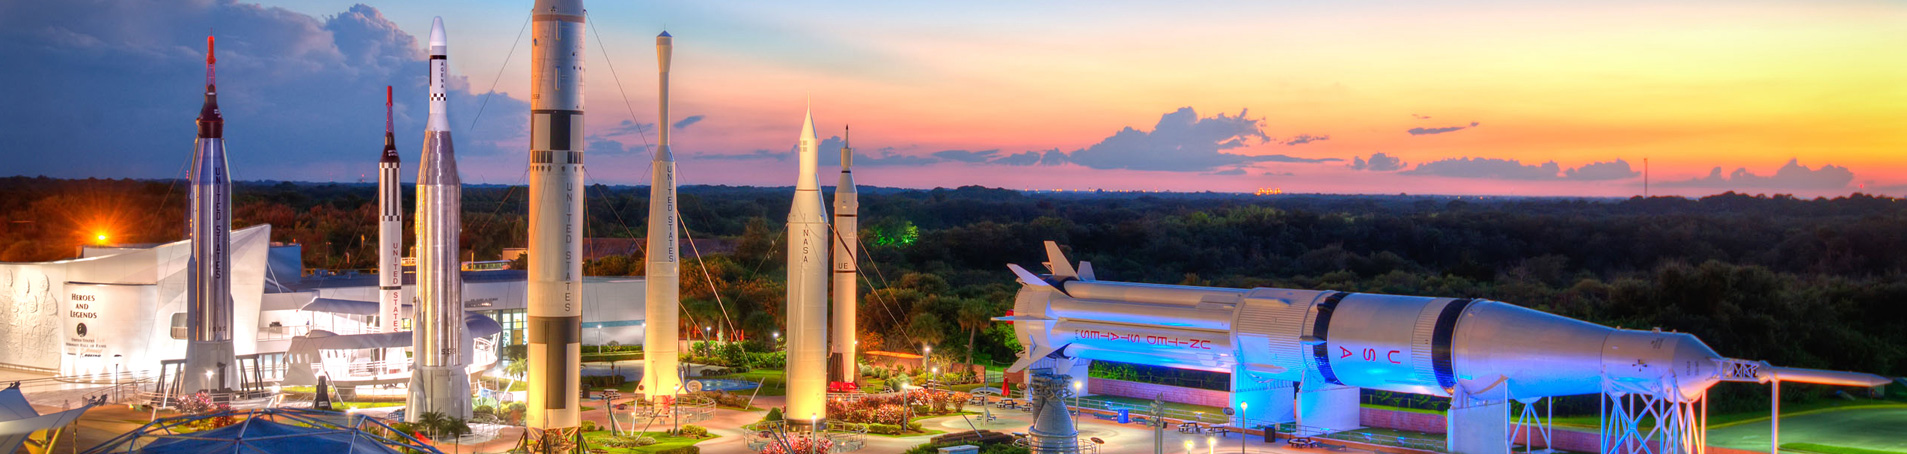 Buy Tickets to Kennedy Space Center Visitor Complex